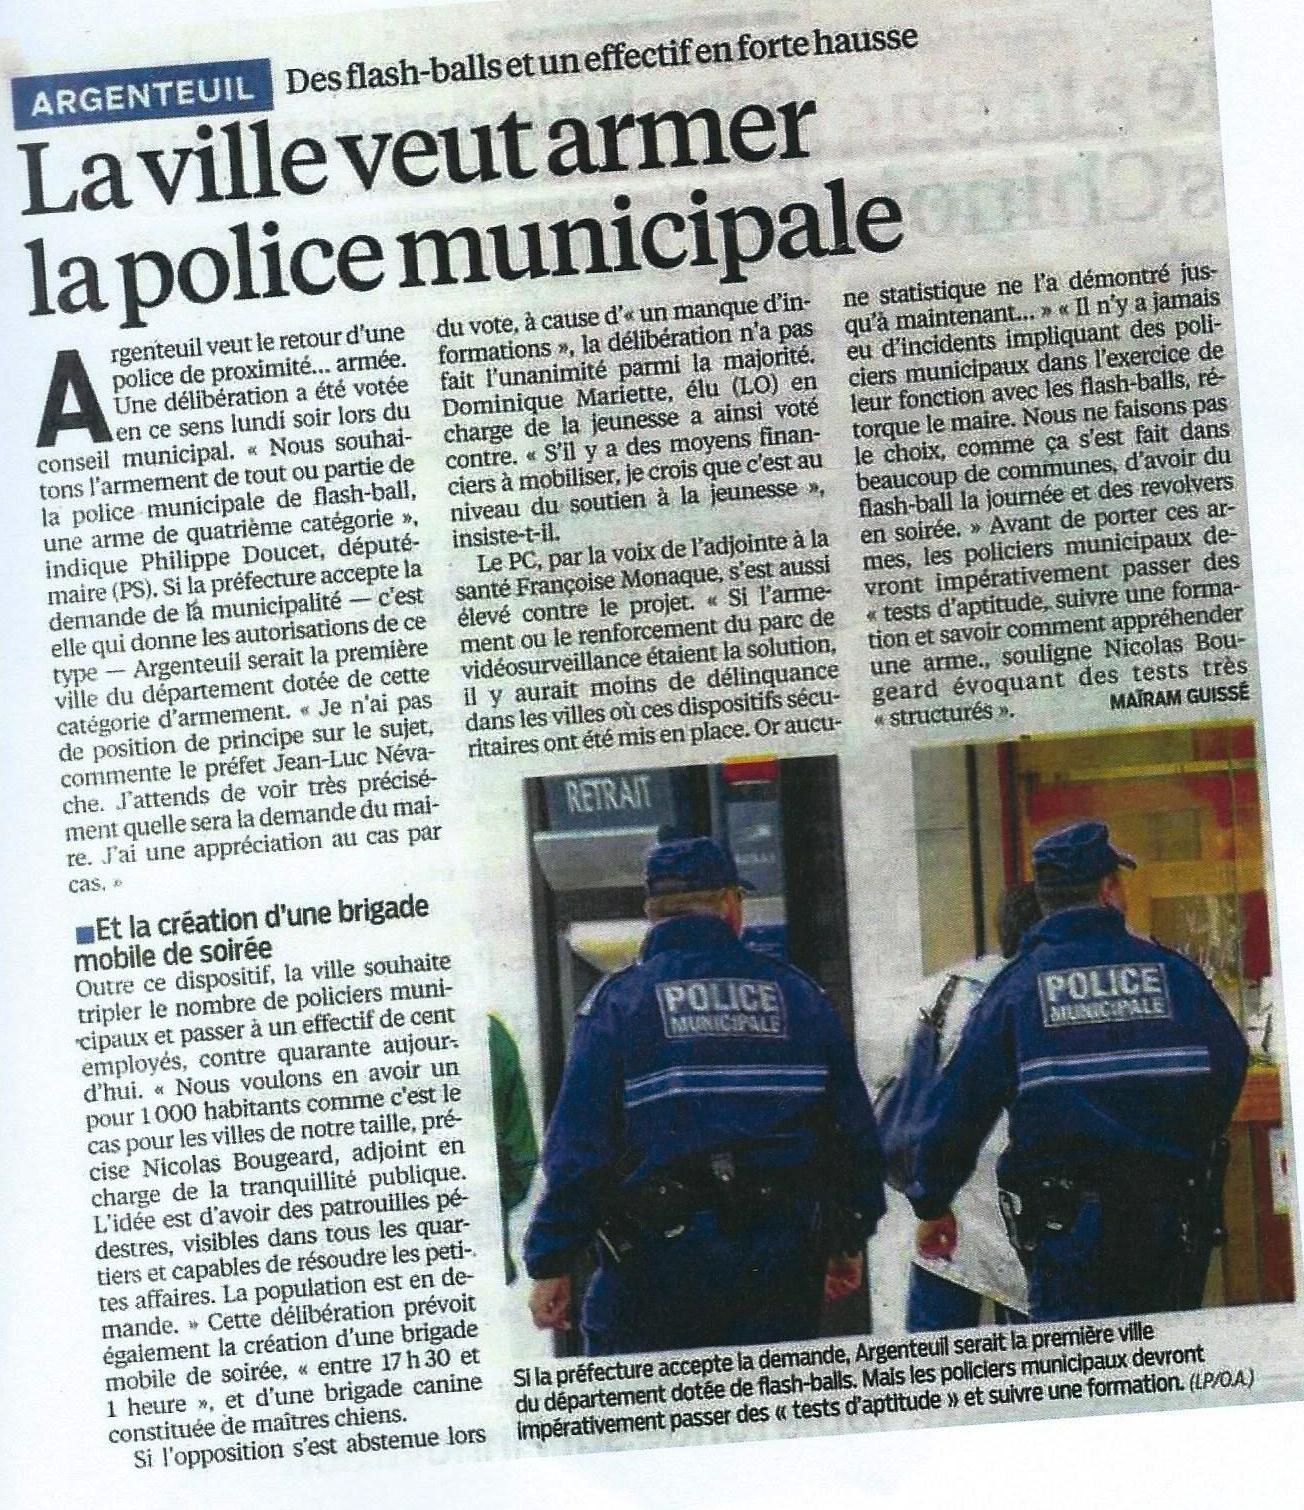 POLICE! PERSONNE NE BOUGE!